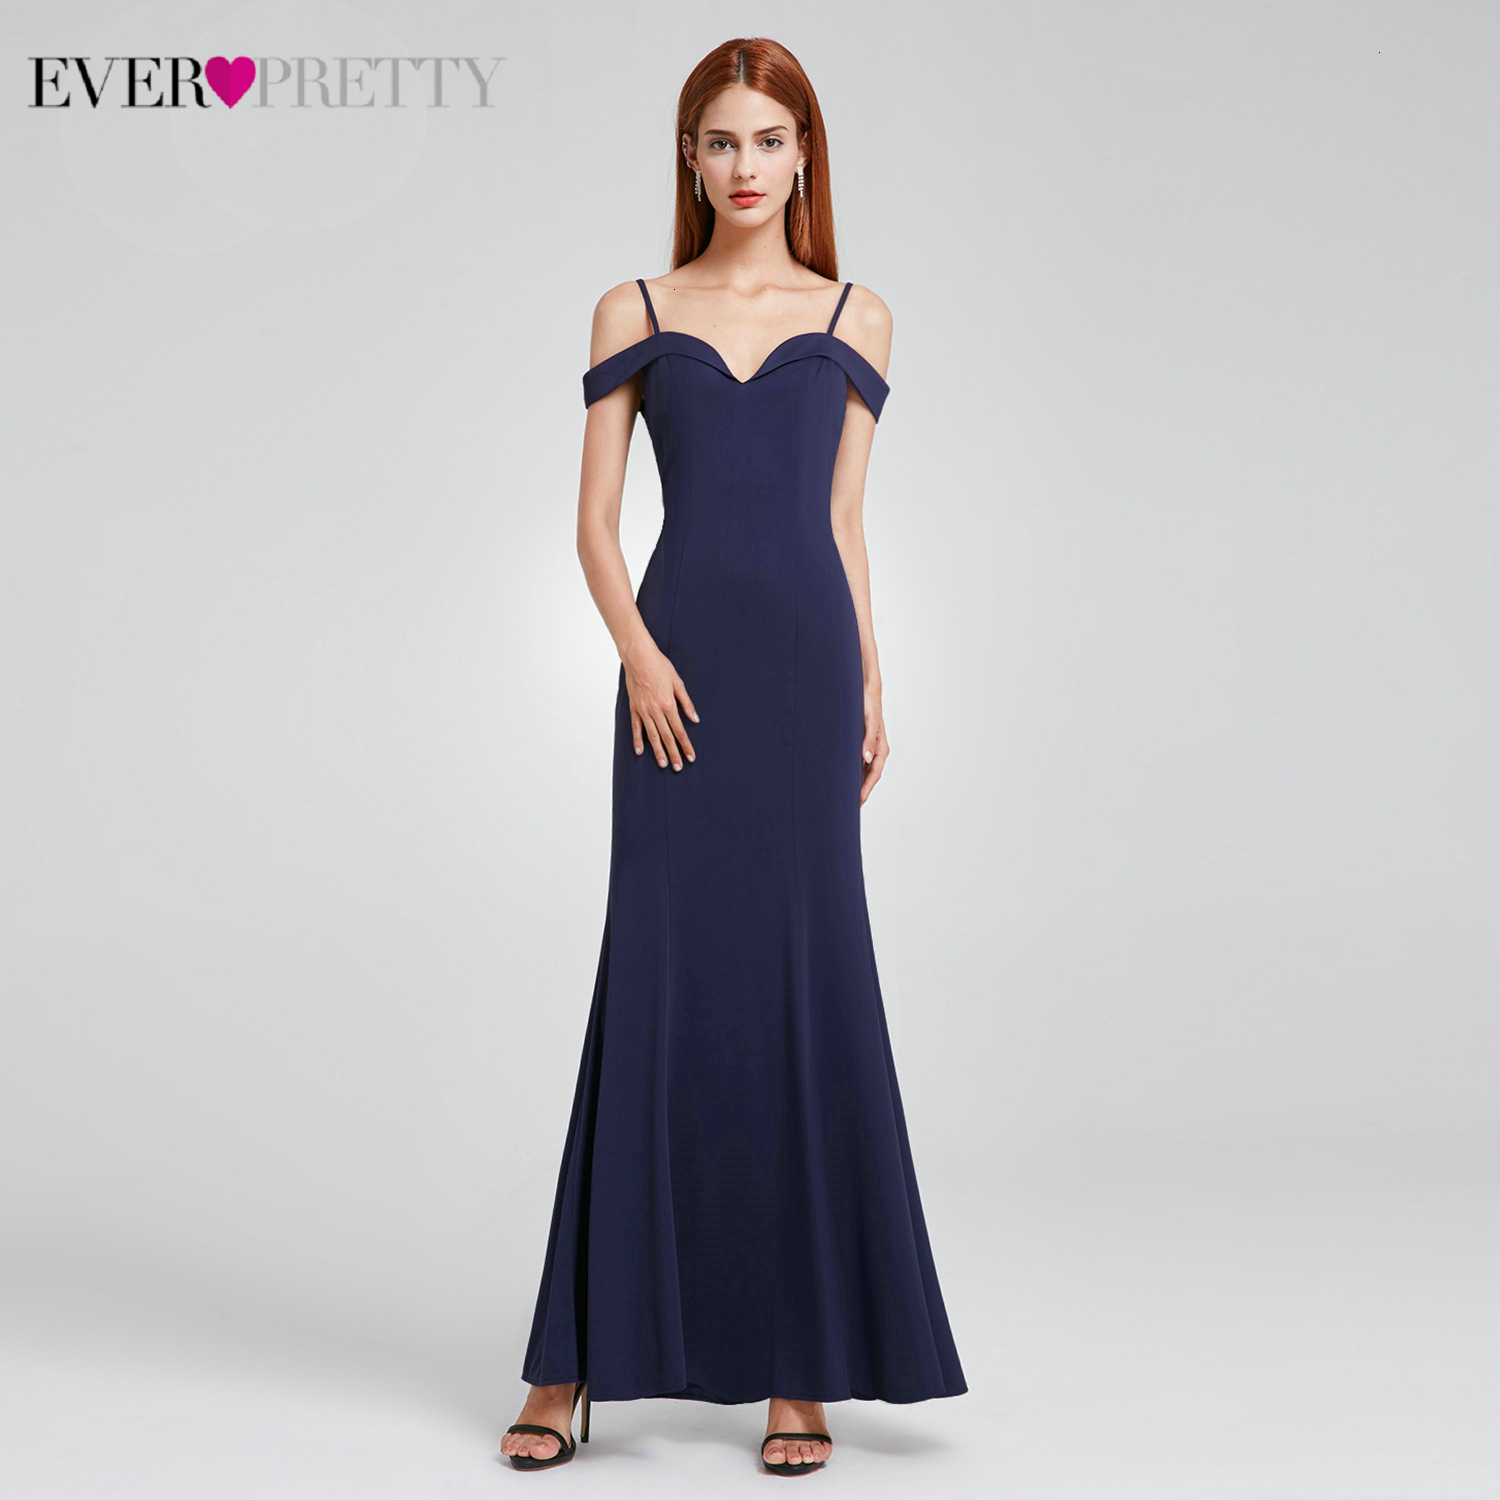 Elegant Mermaid   Evening     Dresses   Long Ever Pretty Spaghetti Straps V-Neck Cheap   Evening   Gowns For Party Vestido De Noiva 2019